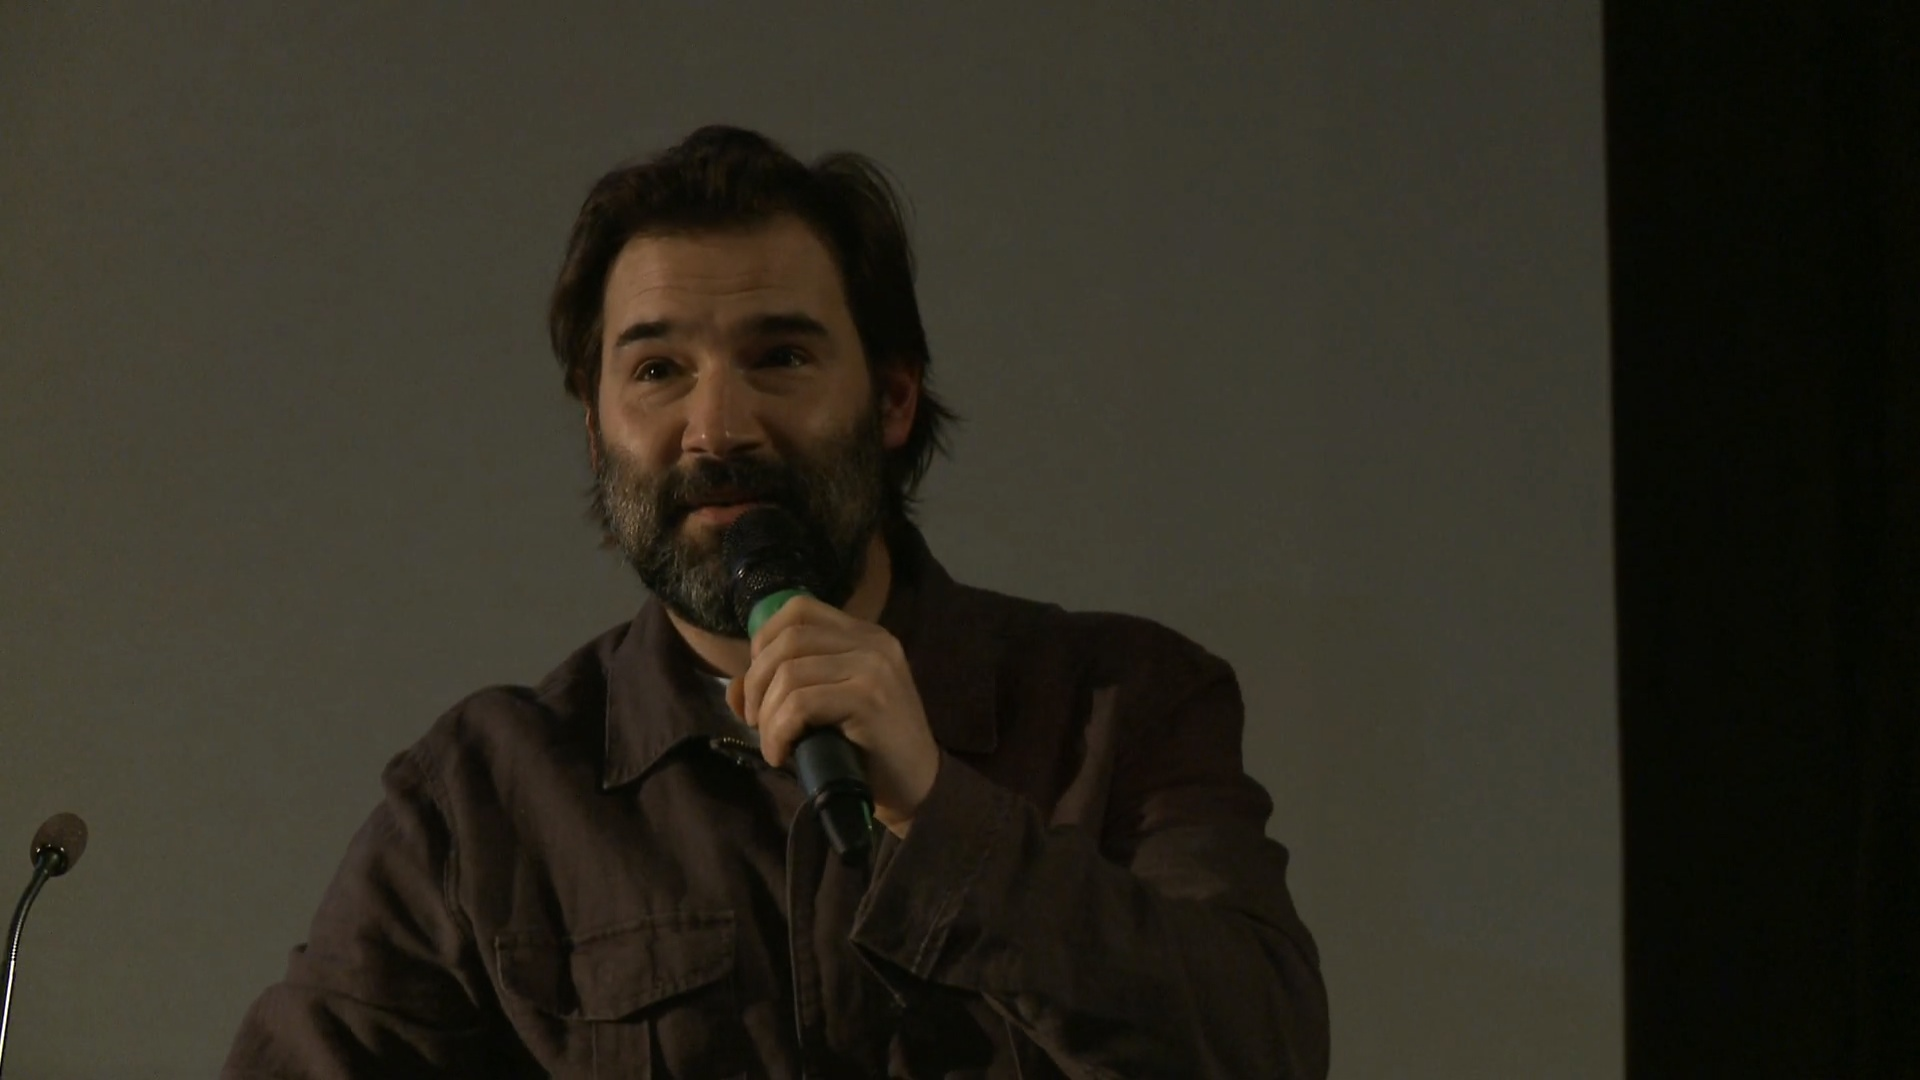 adam buxton countingadam buxton - counting song, adam buxton wife, adam buxton sushi, adam buxton podcast, adam buxton blog, adam buxton footballer, adam buxton, adam buxton soundcloud, adam buxton david bowie, adam buxton countdown, adam buxton festival song, adam buxton wiki, adam buxton songs of praise, adam buxton shed of christmas, adam buxton friends, adam buxton counting, adam buxton twitter, adam buxton youtube, adam buxton tour, adam buxton bowie